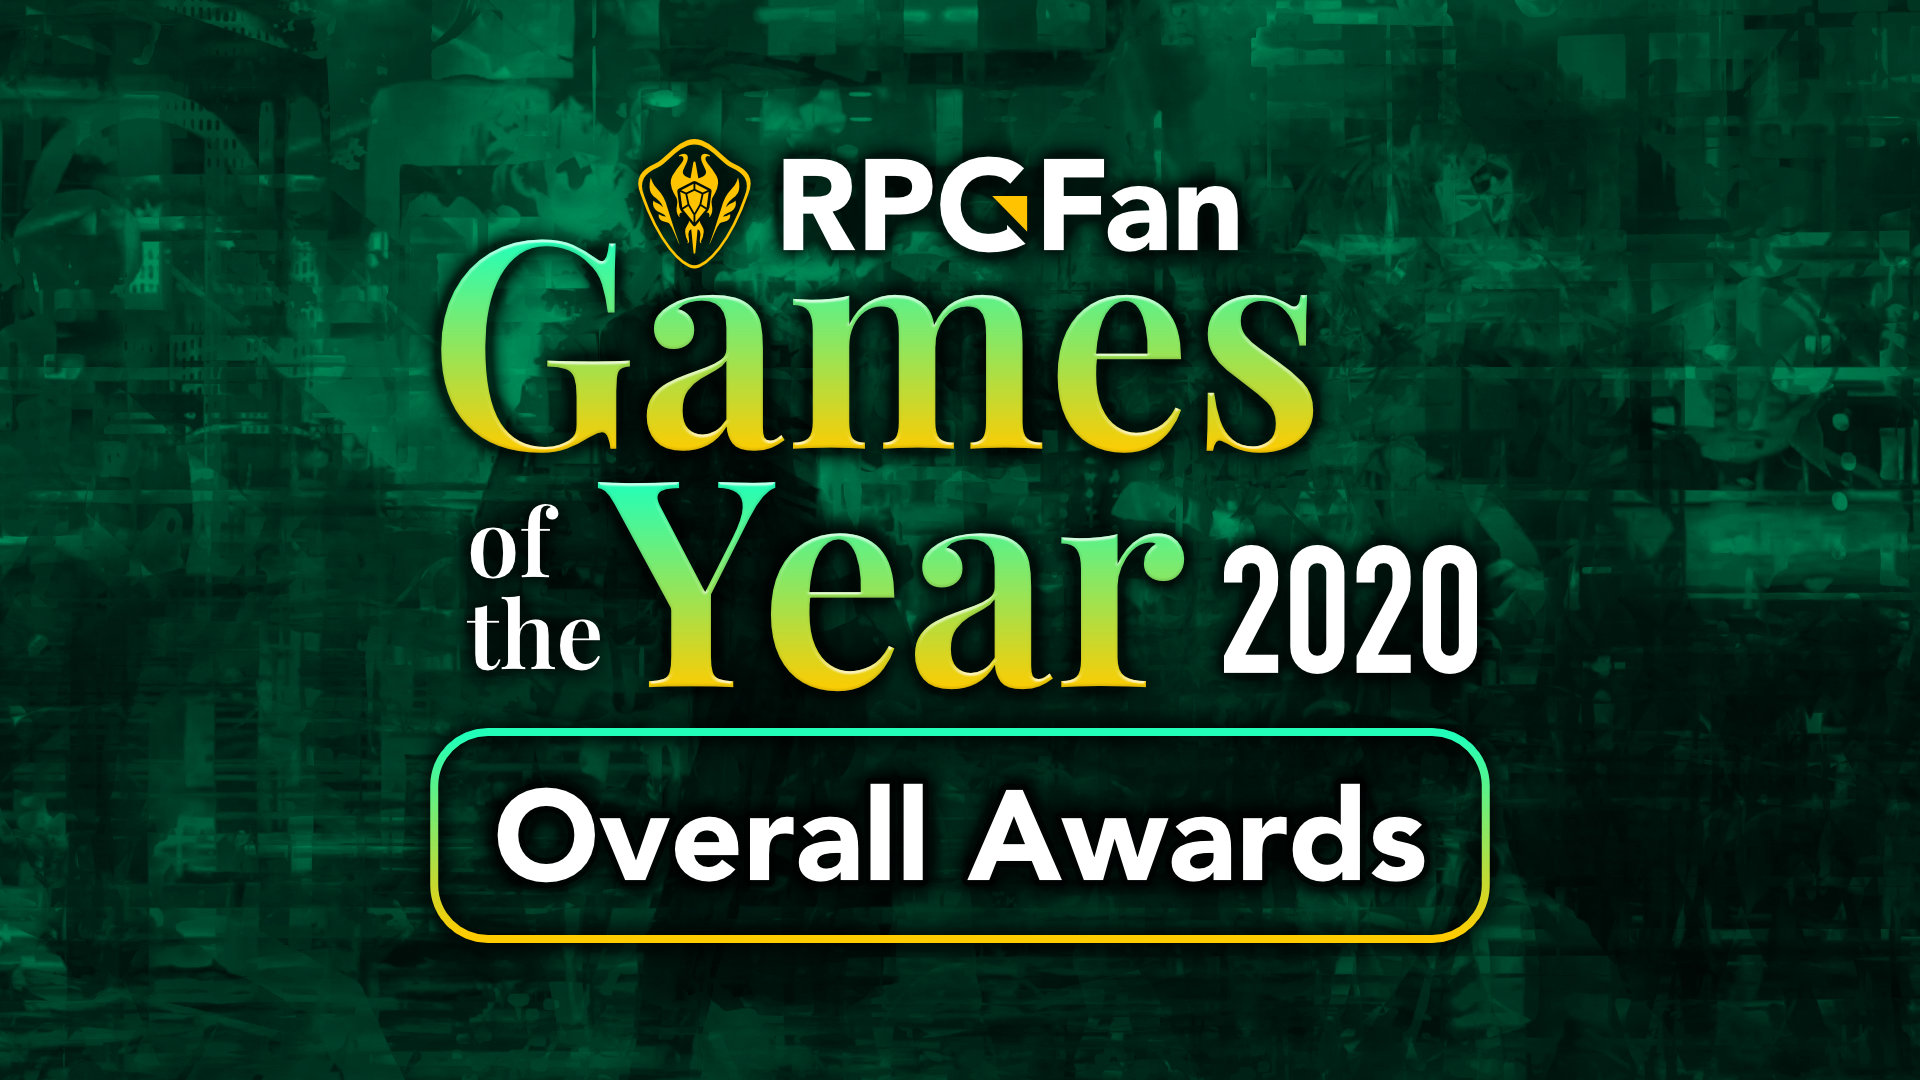 RPGFan Games of the Year 2020 Overall Awards